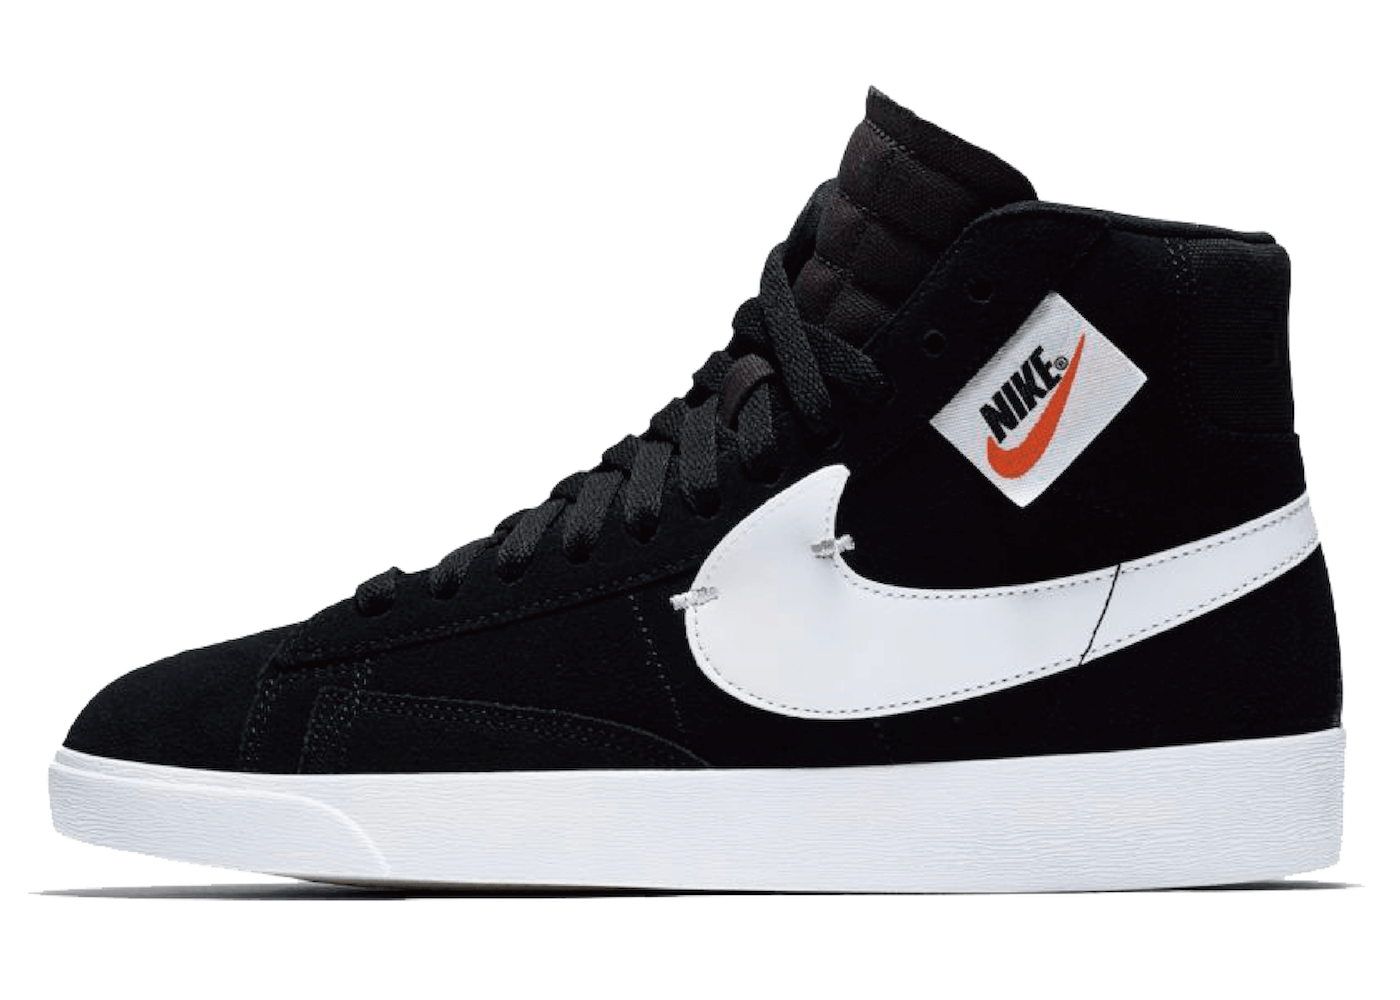 Nike Blazer Mid Rebel Black White (W)の写真